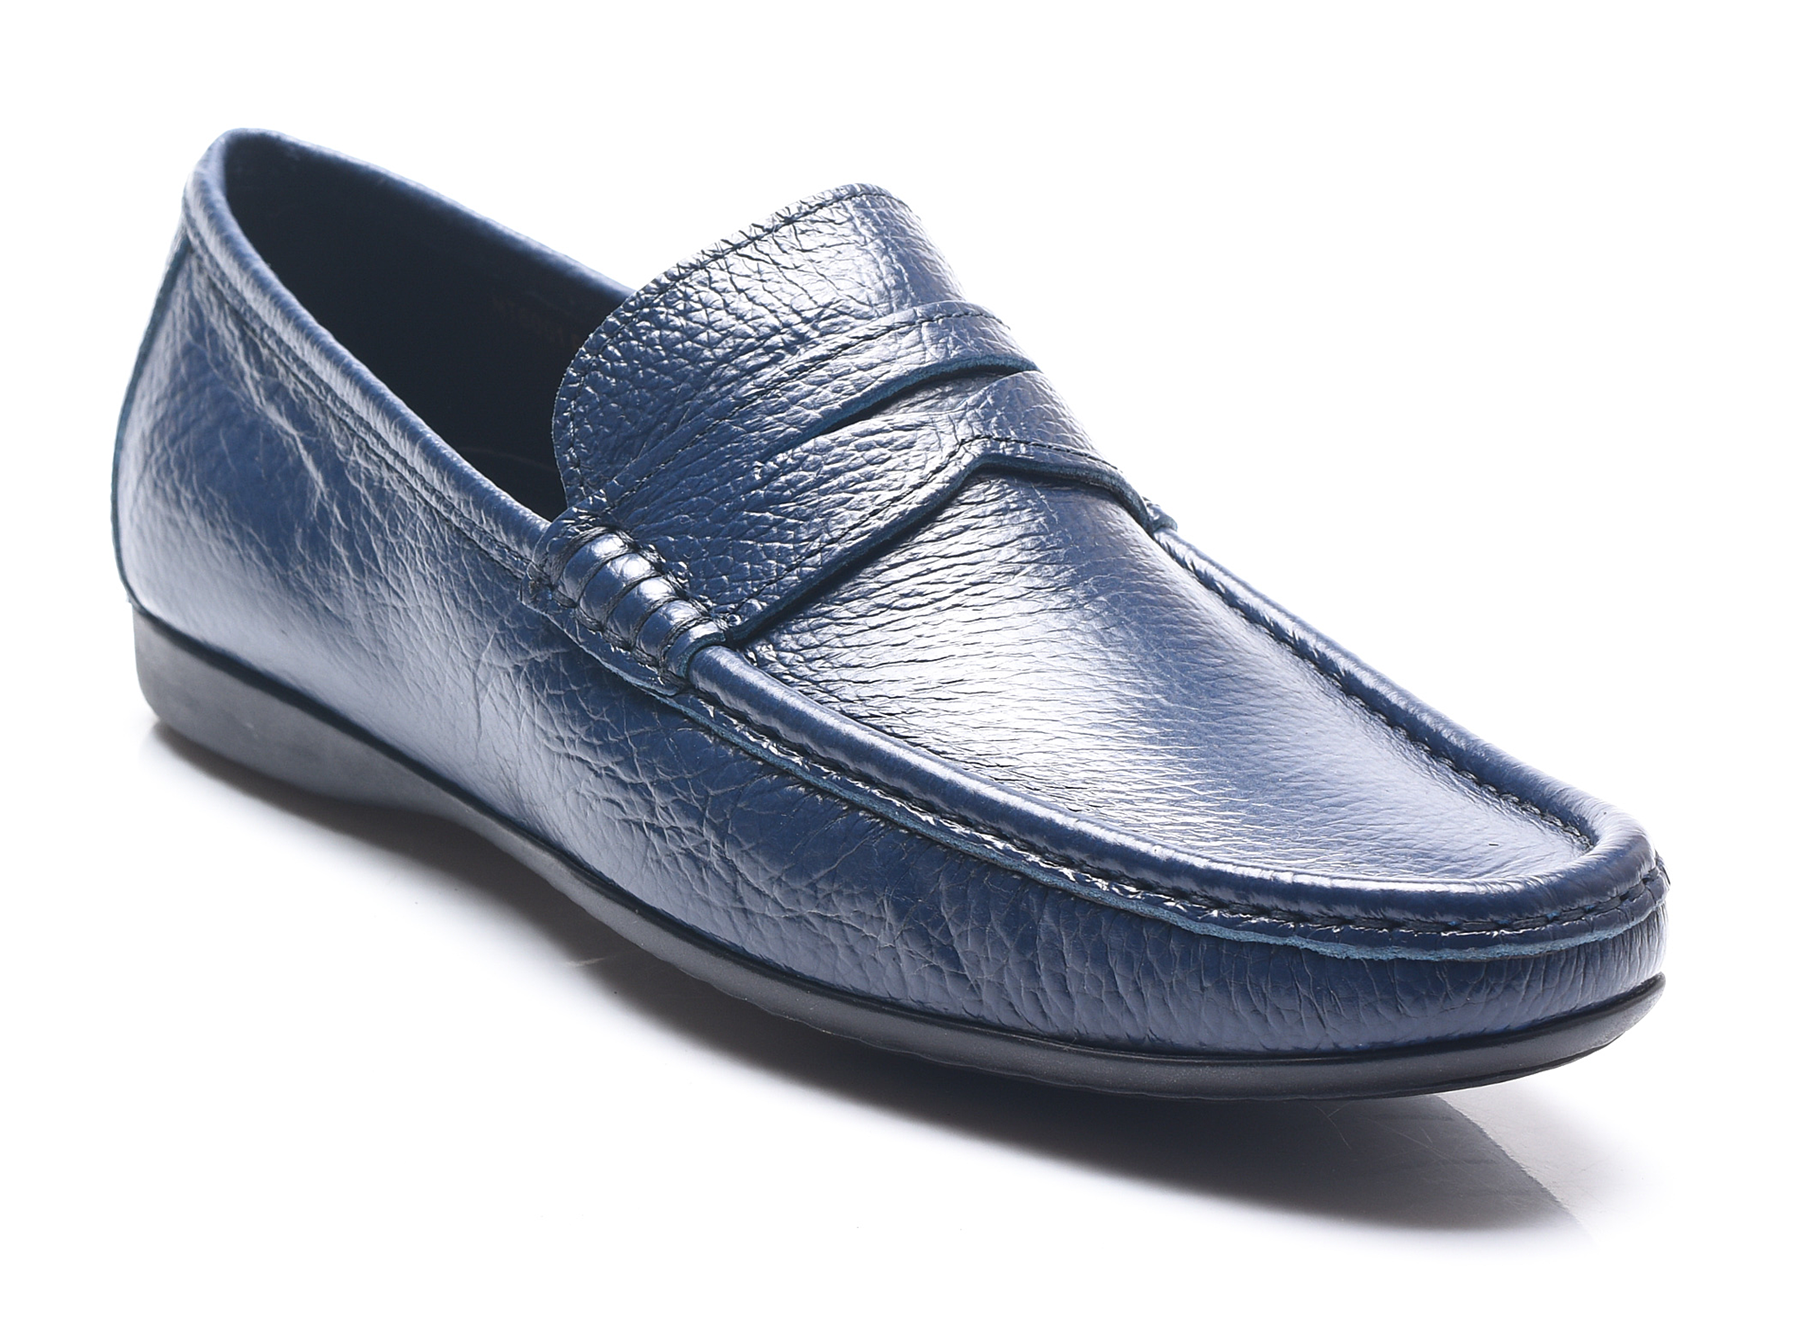 Bruno Magli Shows Us a Thing or Two About Elegant Footwear